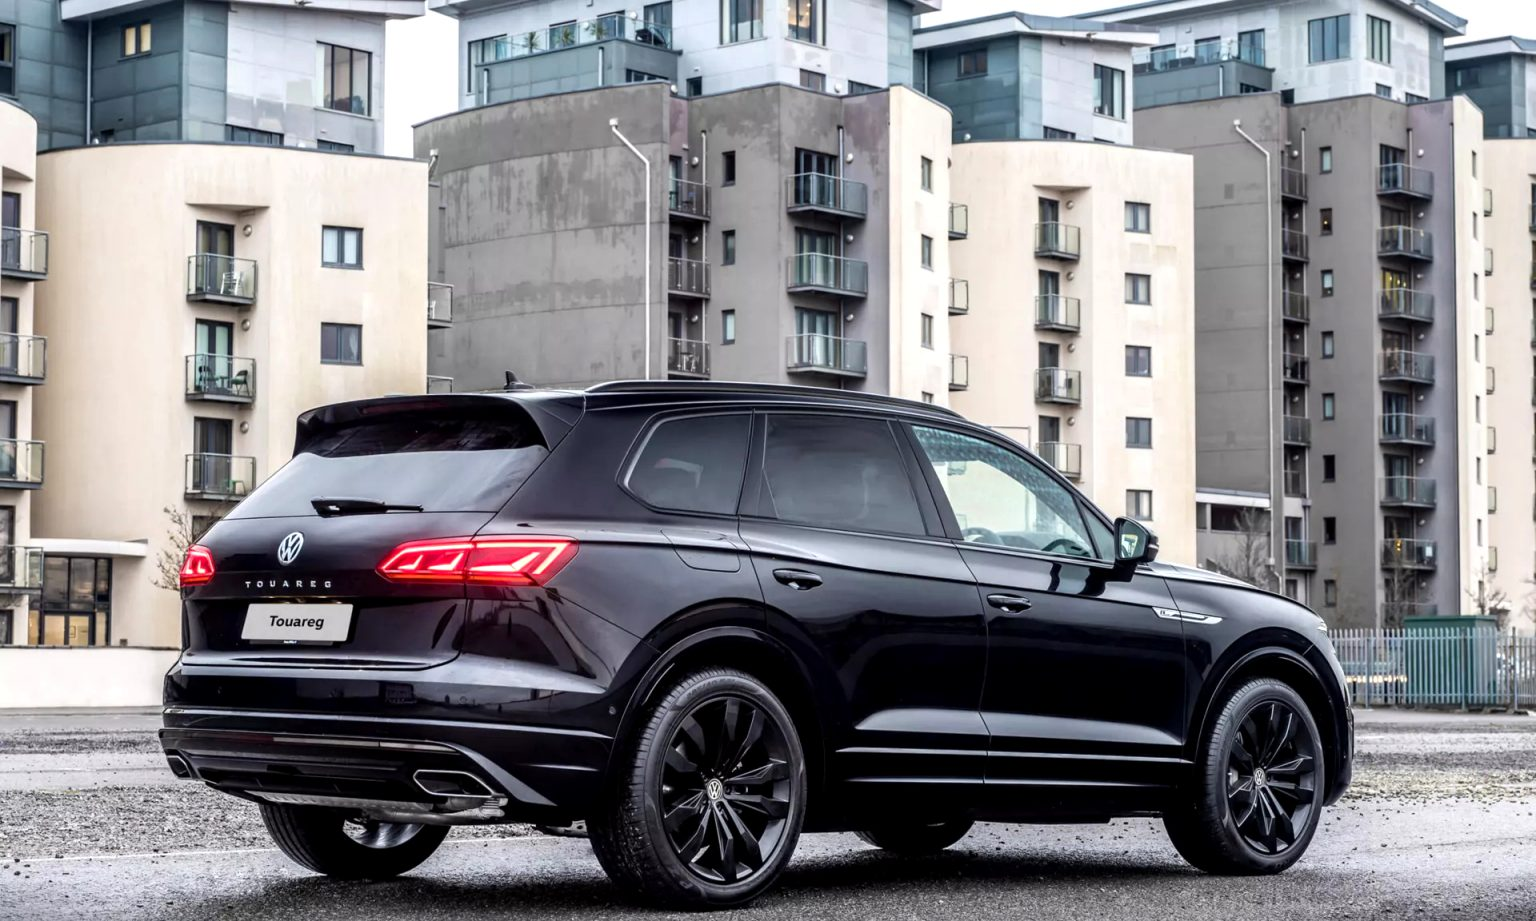 volkswagen touareg 2021 price in qatar Redesign and Concept